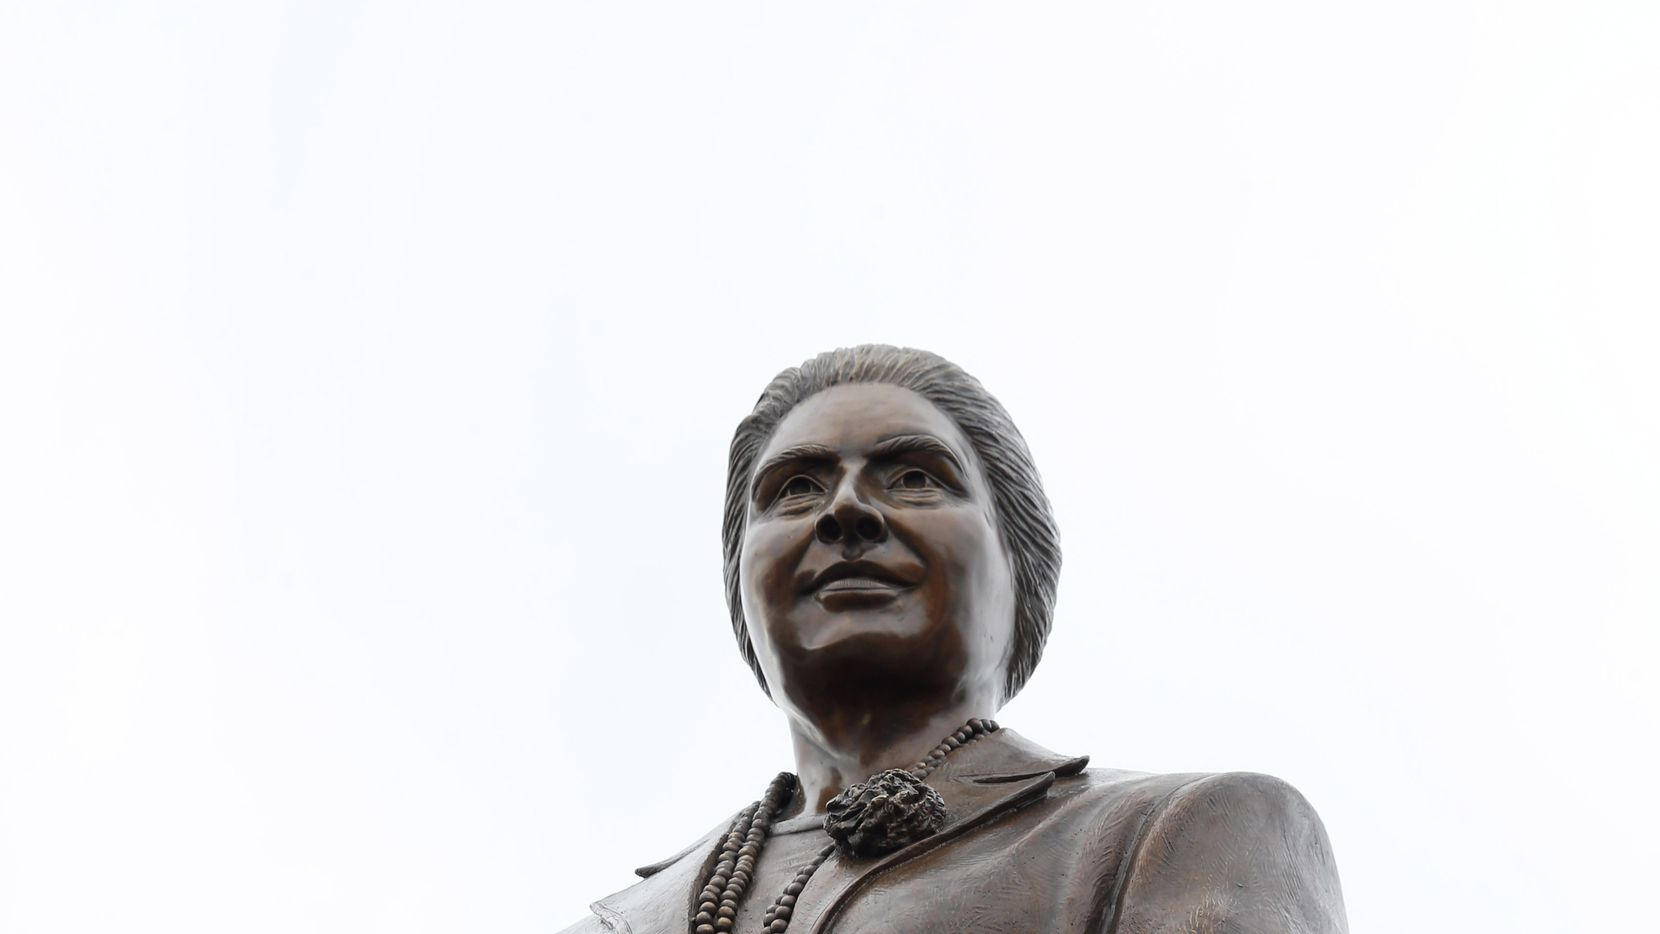 Adelfa B. Callejo statue by artist German Michel at a storage facility in Dallas on Wednesday, November 27, 2019. Adelfa Callejo was a fierce civil rights defender and lawyer who died six years ago.